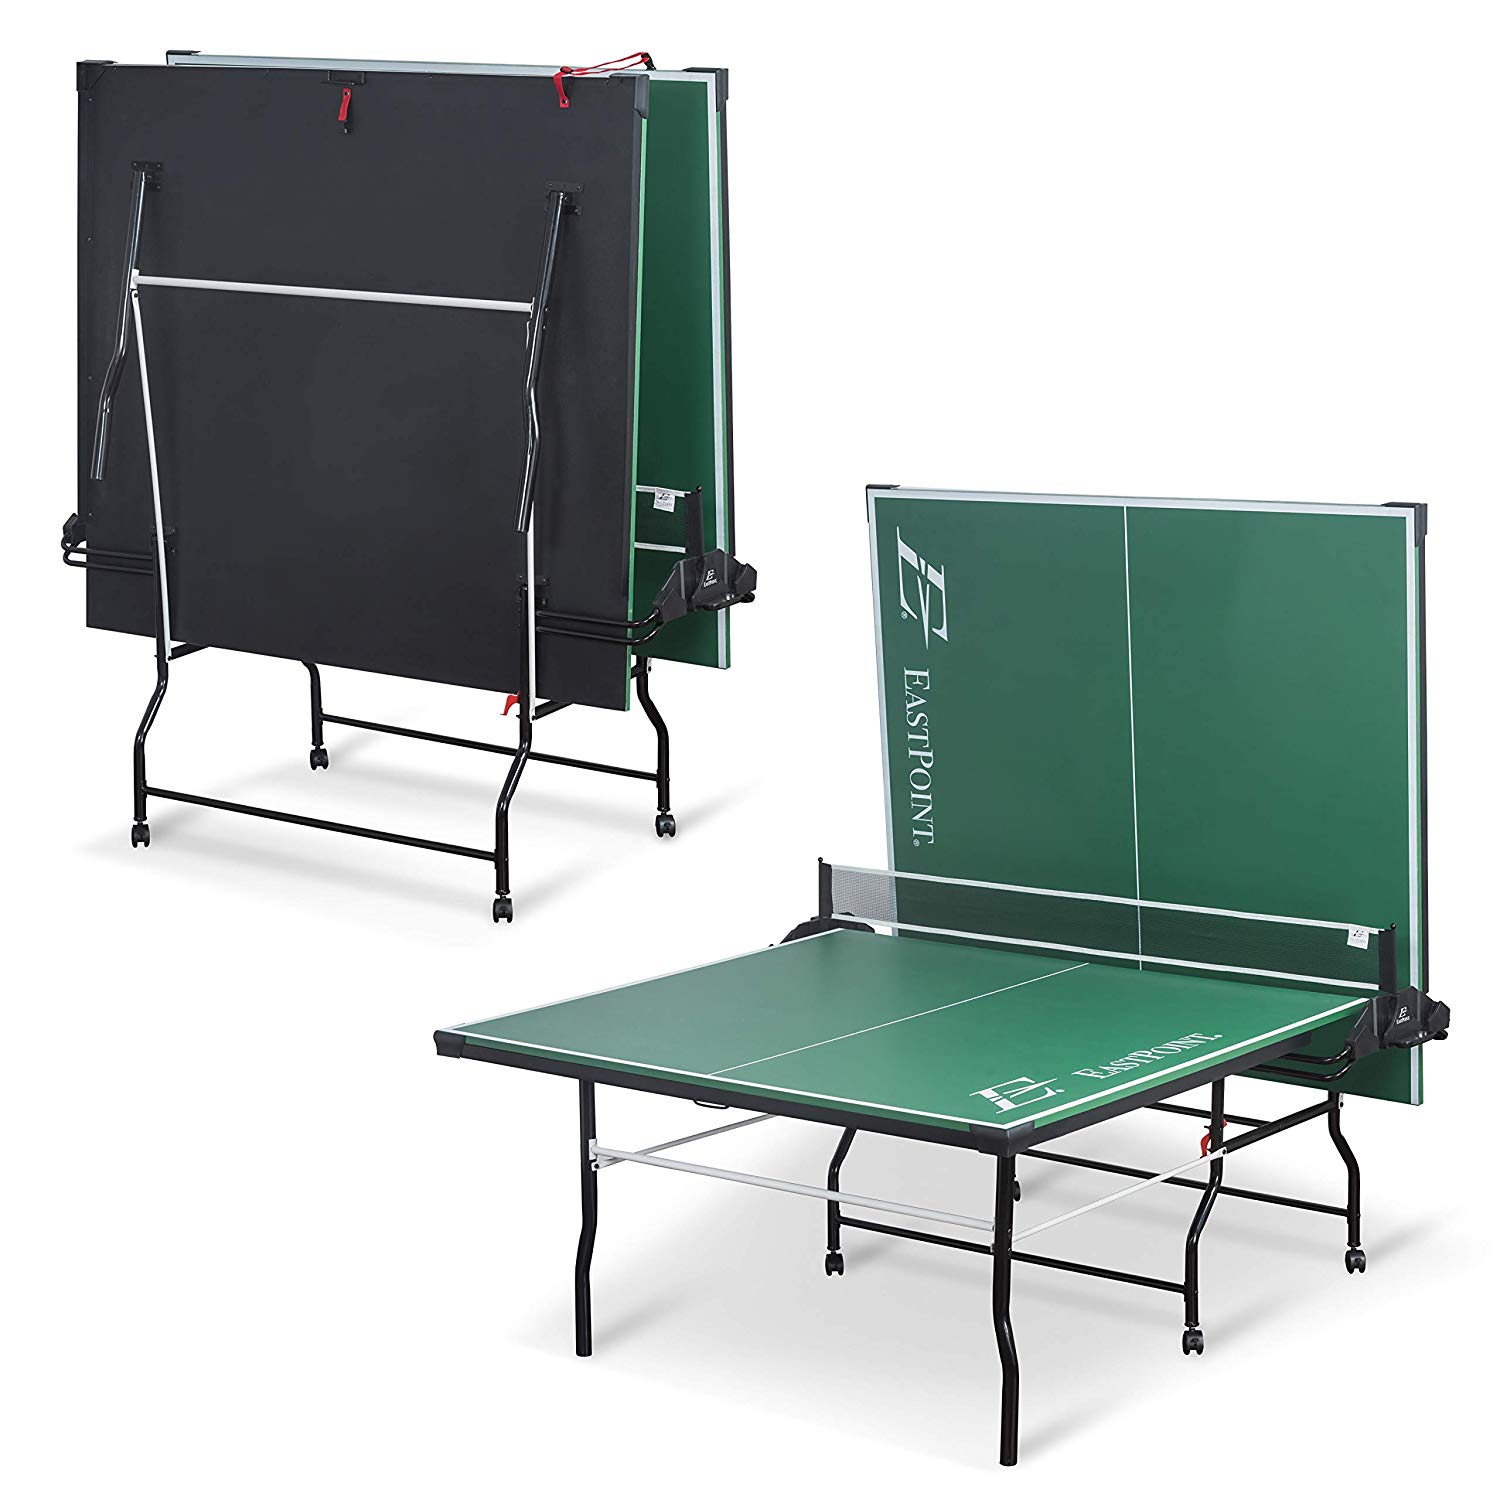 12 Best Ping Pong Tables Reviewed In Detail Nov 2019